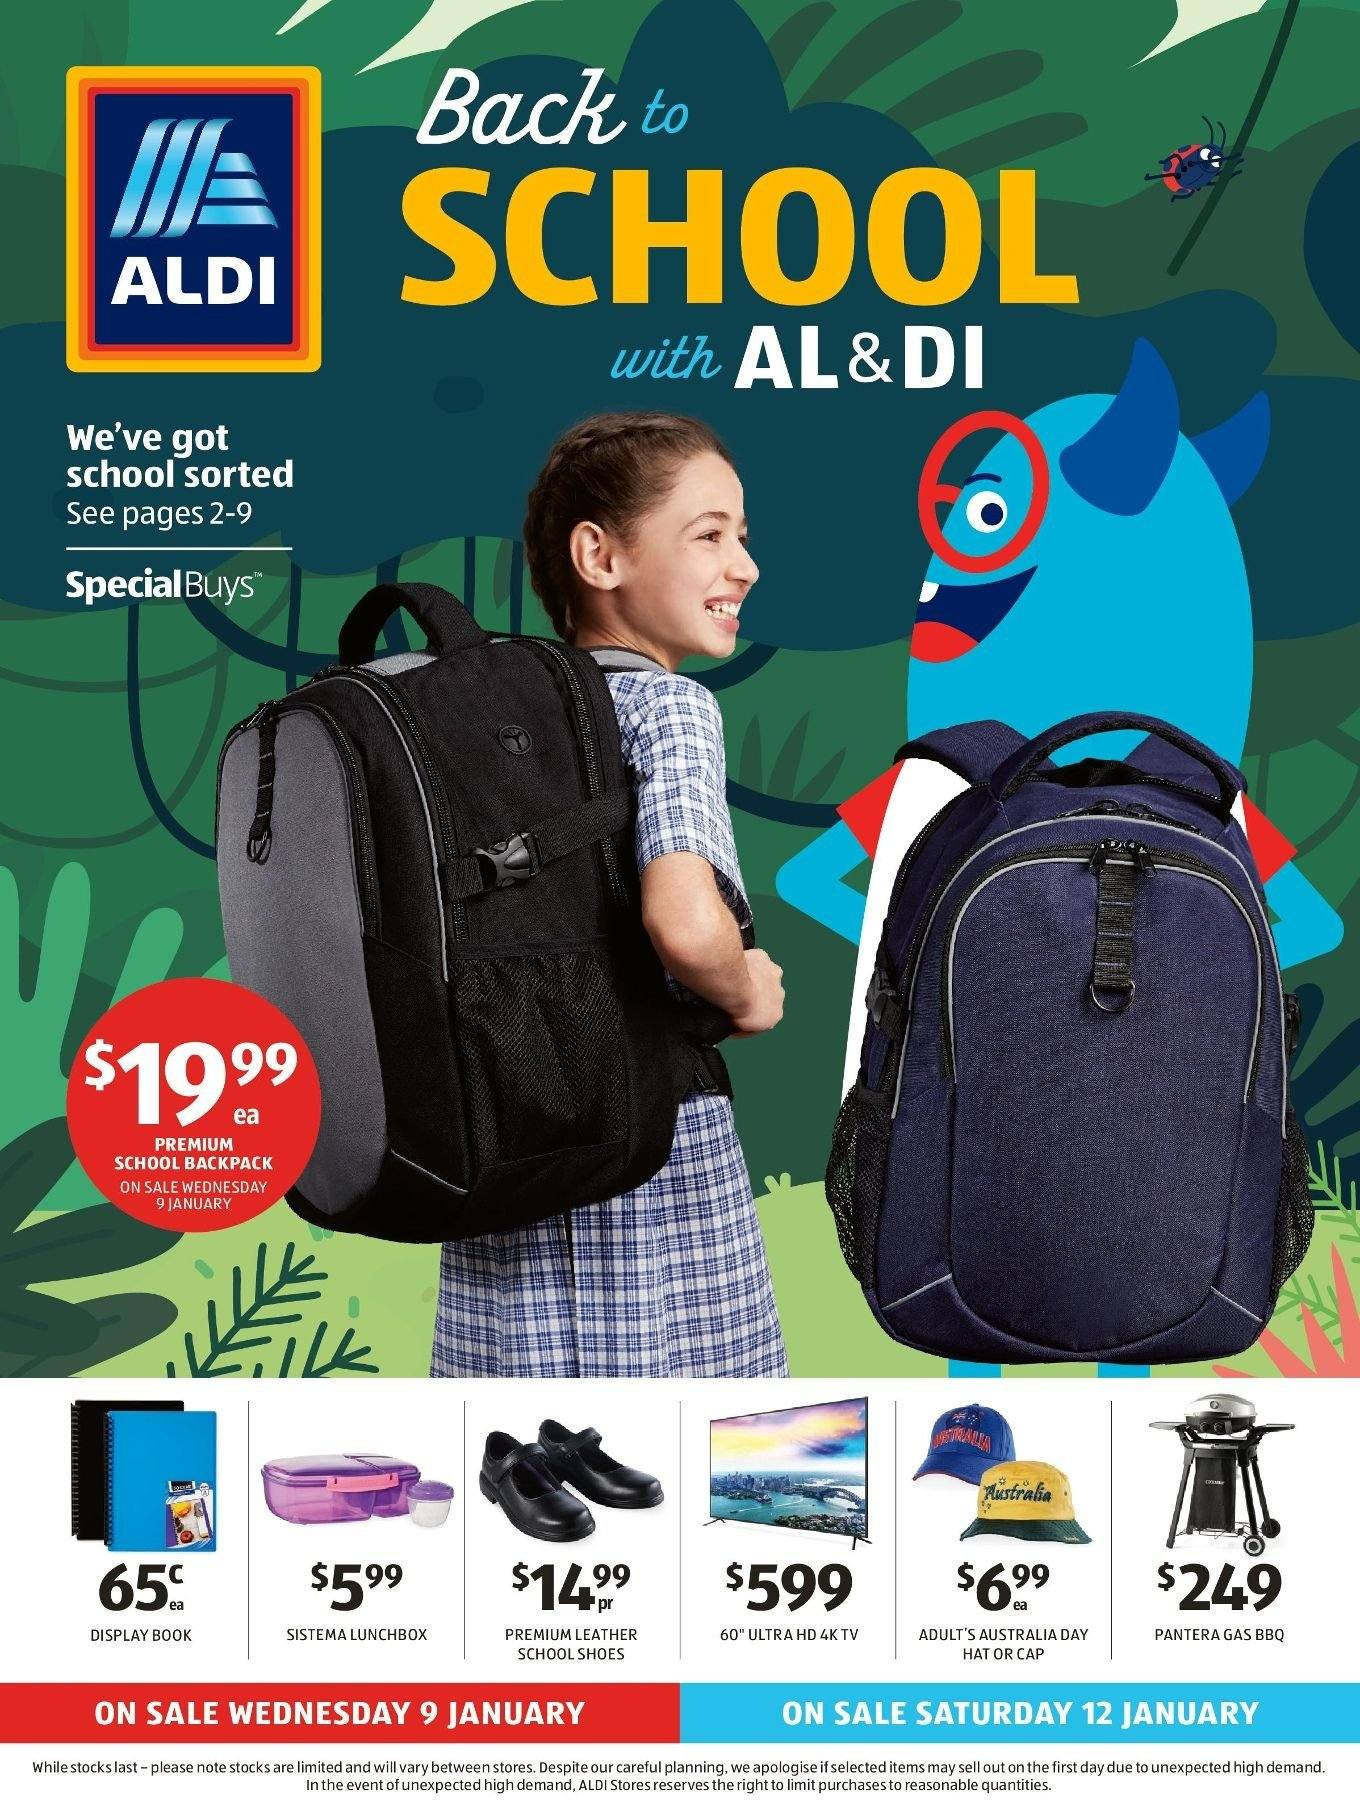 ALDI Catalogue - 9.1.2019 - 15.1.2019 - Sales products - backpack, cap, uhd tv, ultra hd, hat, barbecue, book. Page 1.